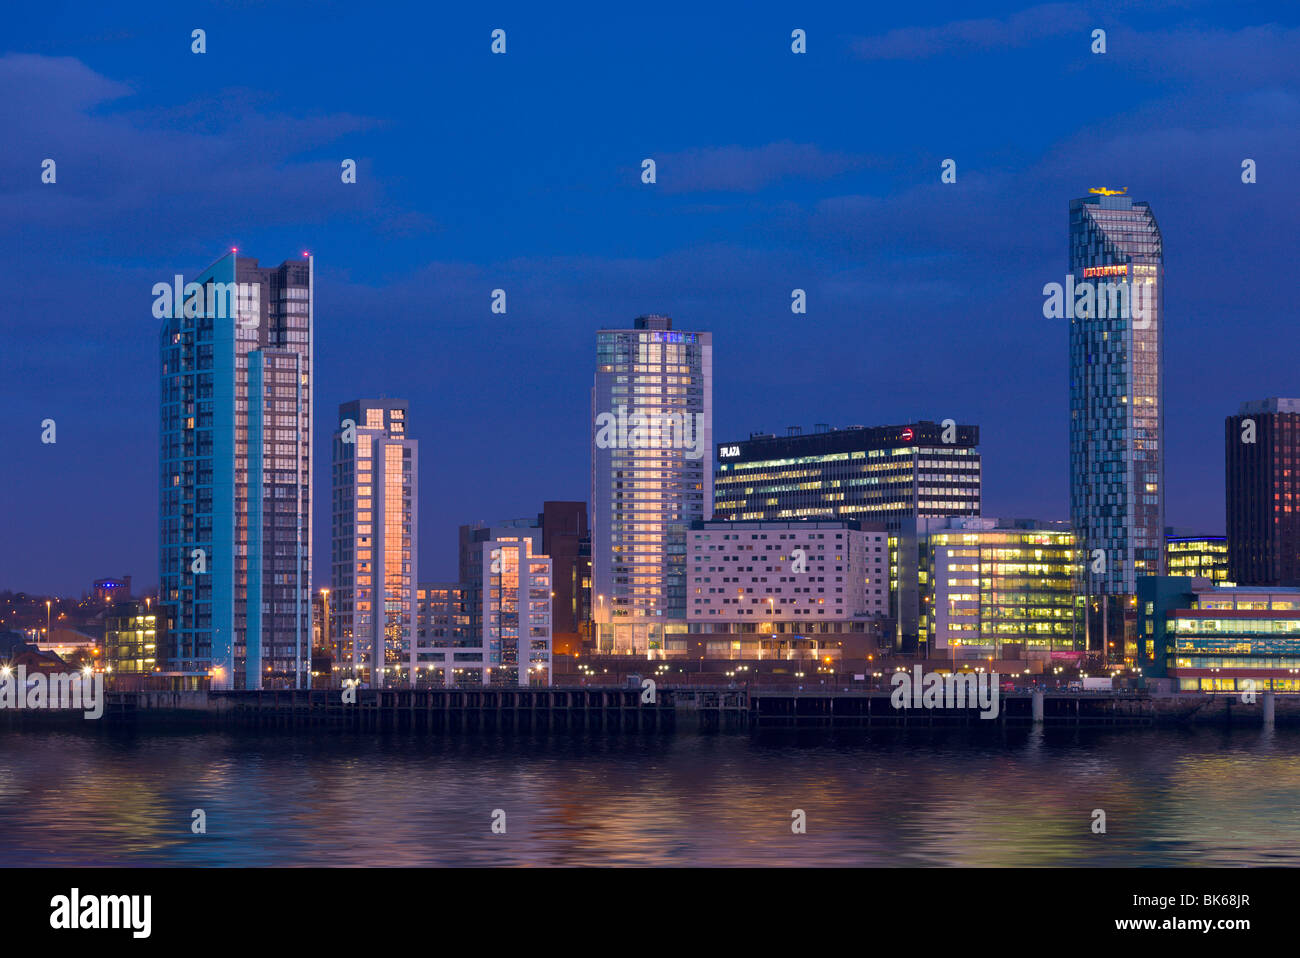 Skyline and Waterfront at night, Liverpool, Merseyside, England - Stock Image